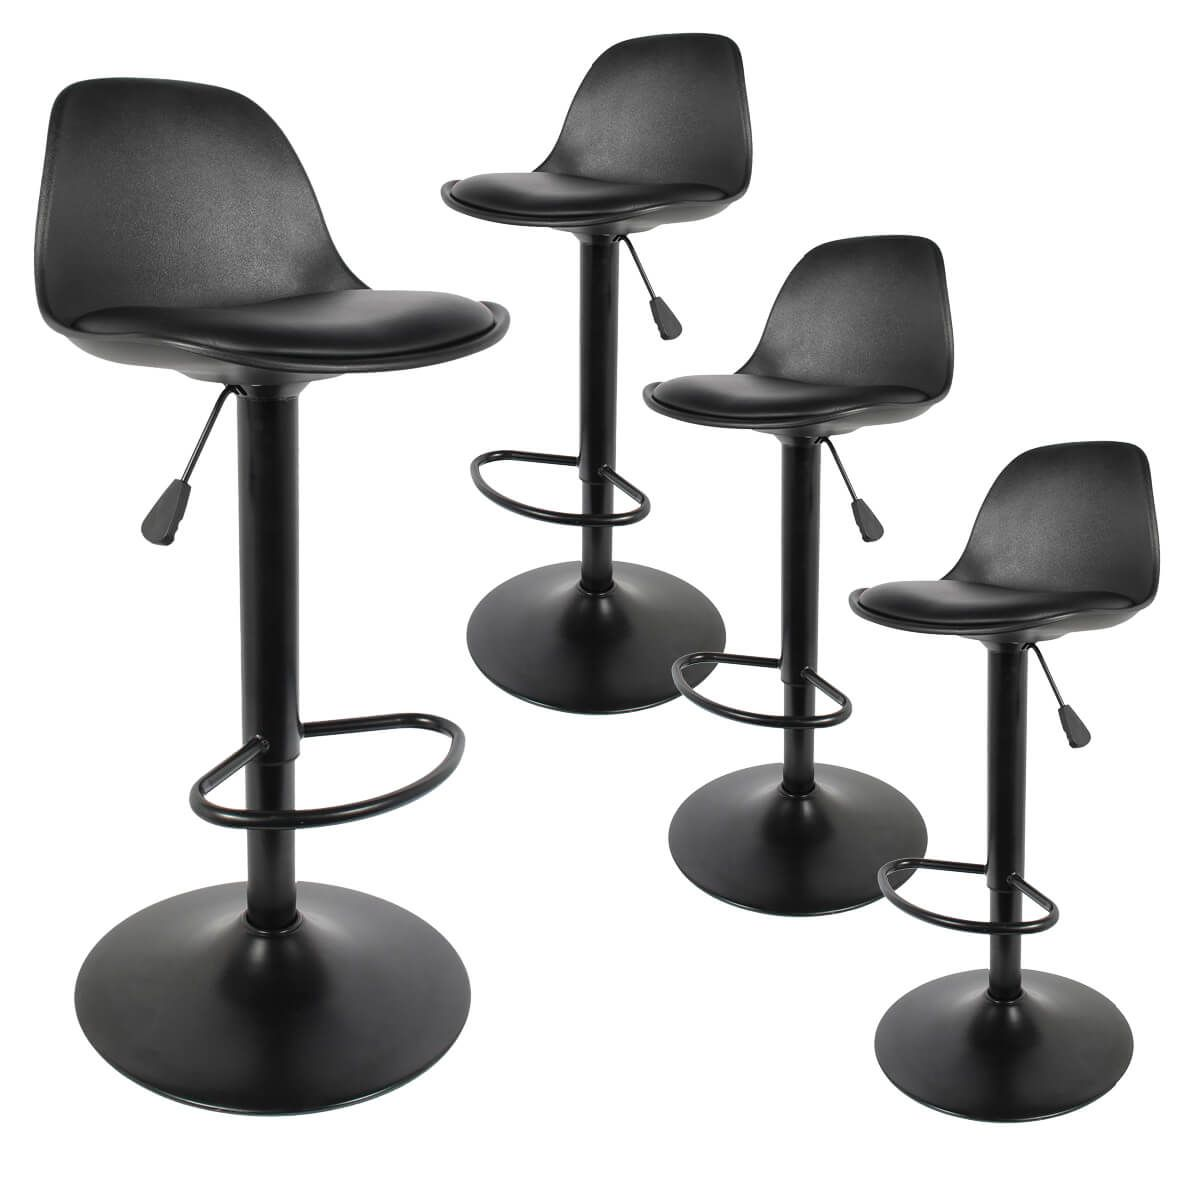 Altobuy Newton Lot De 4 Tabourets De Bar Coloris Noir Neuf Ebay